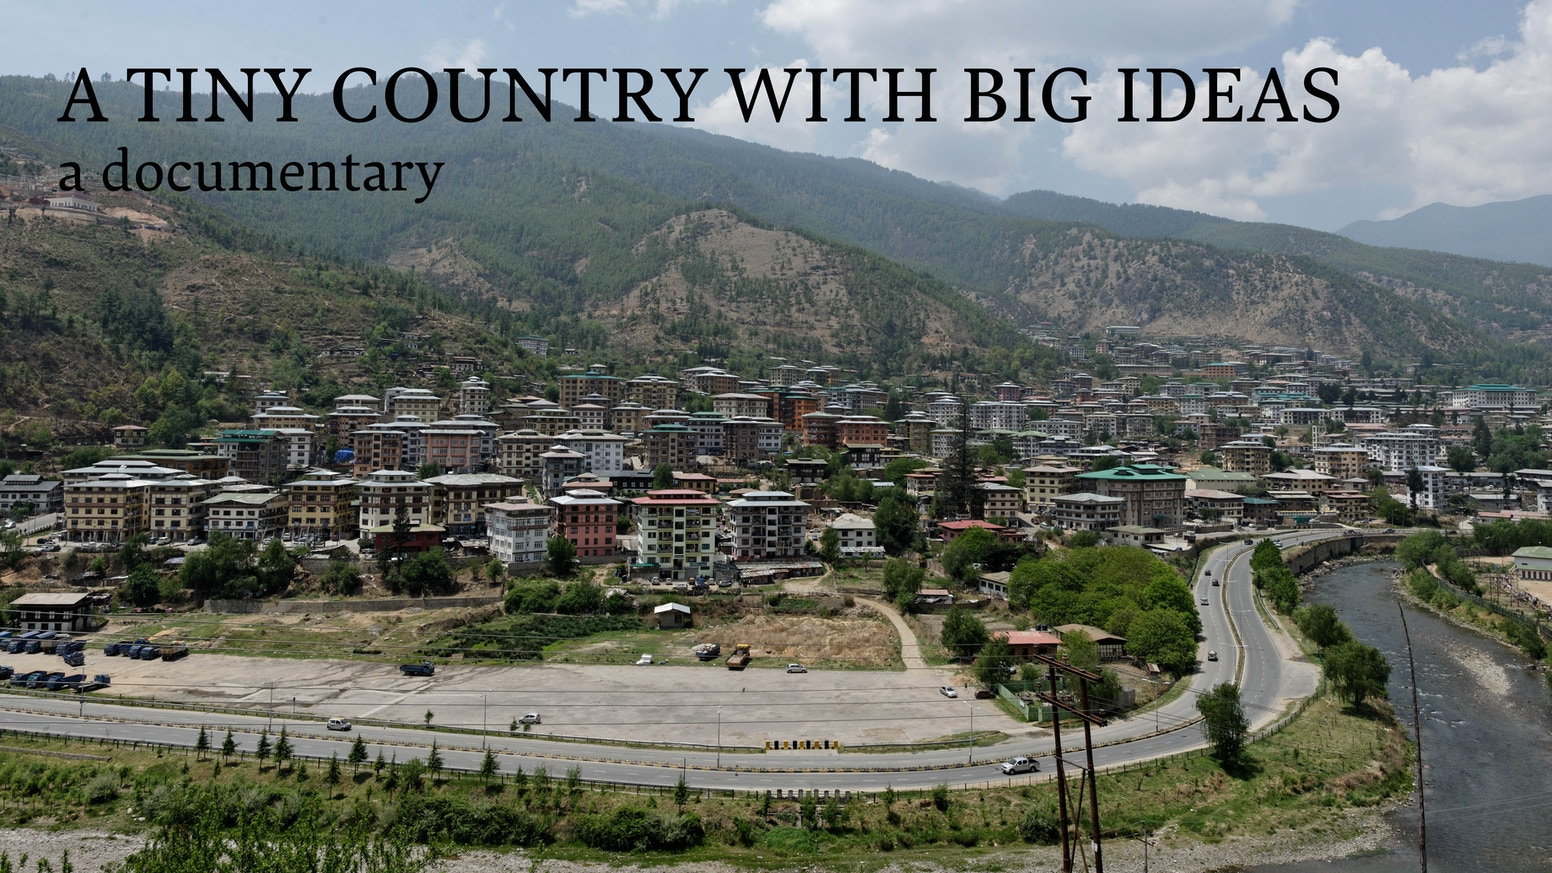 A documentary film how Bhutan became an inspiration for both developing and developed countries.